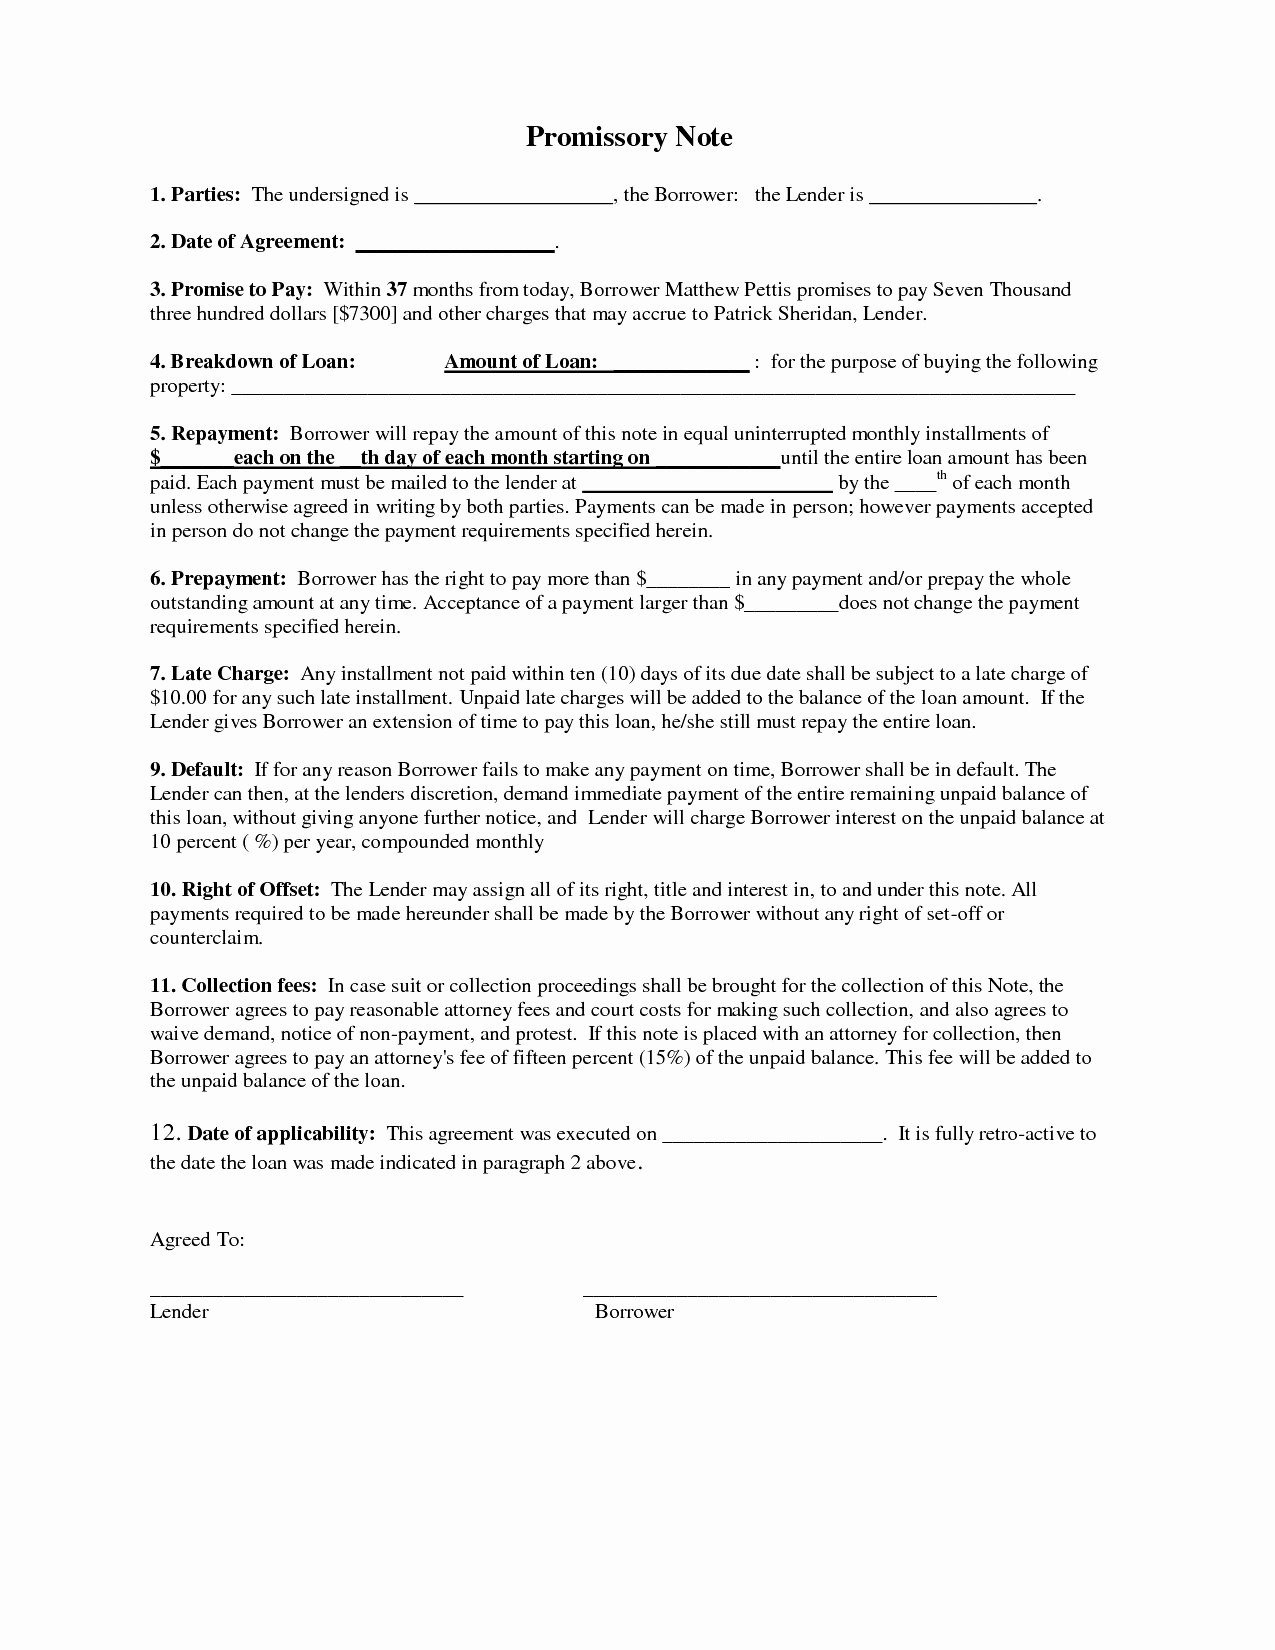 Demand Letter Promissory Note Template - Sample Promissory Note for Business Loan Inspirational Sample